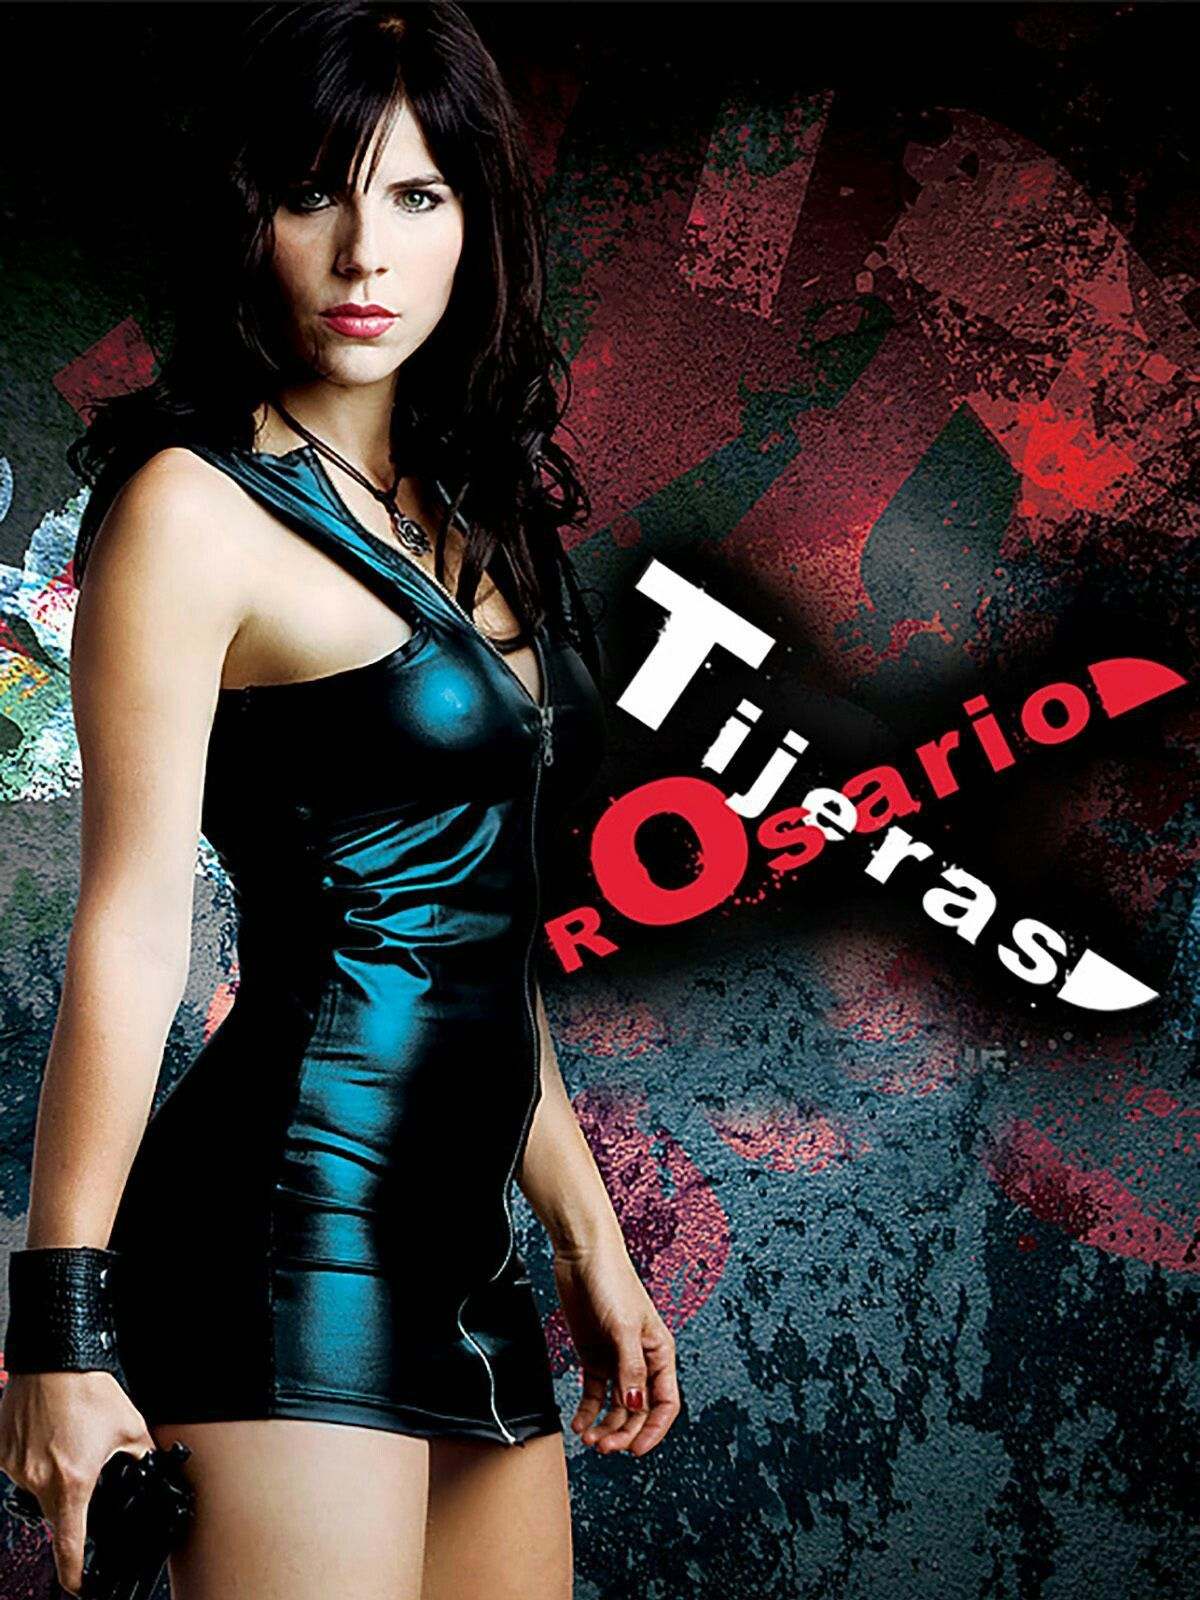 Rosario Tijeras Netflix In And Out Movie Model Poses